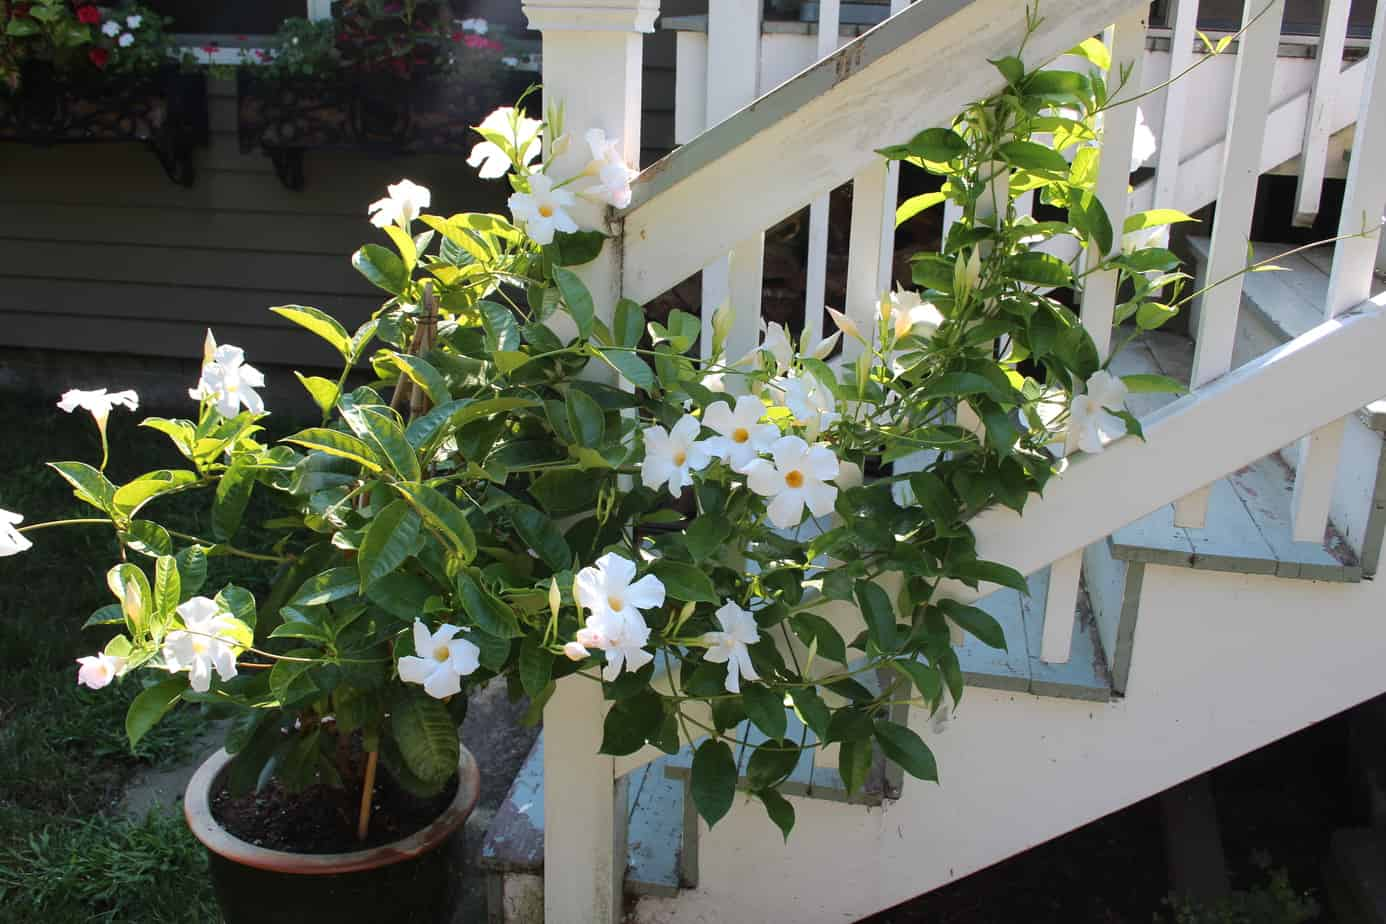 Mandevilla is a beautiful flowering, climbing plant that is lovely for deck stairs.